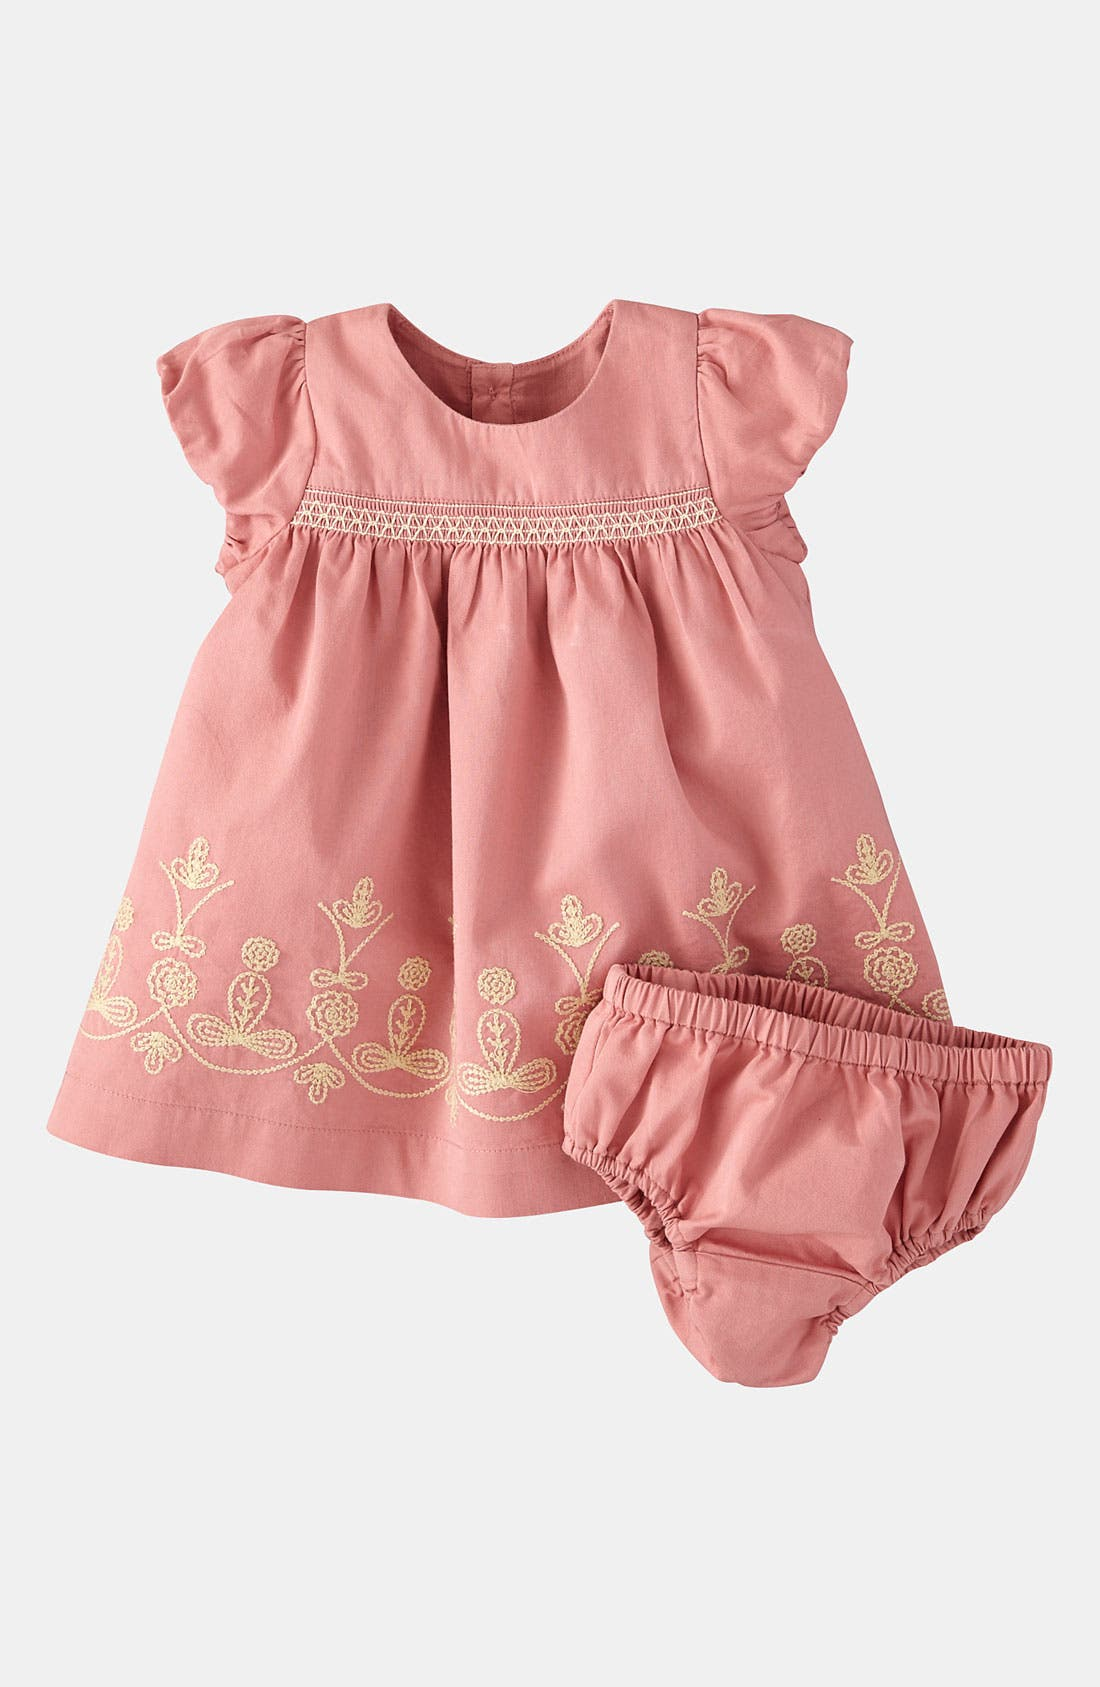 Alternate Image 1 Selected - Mini Boden Embroidered Dress (Infant)